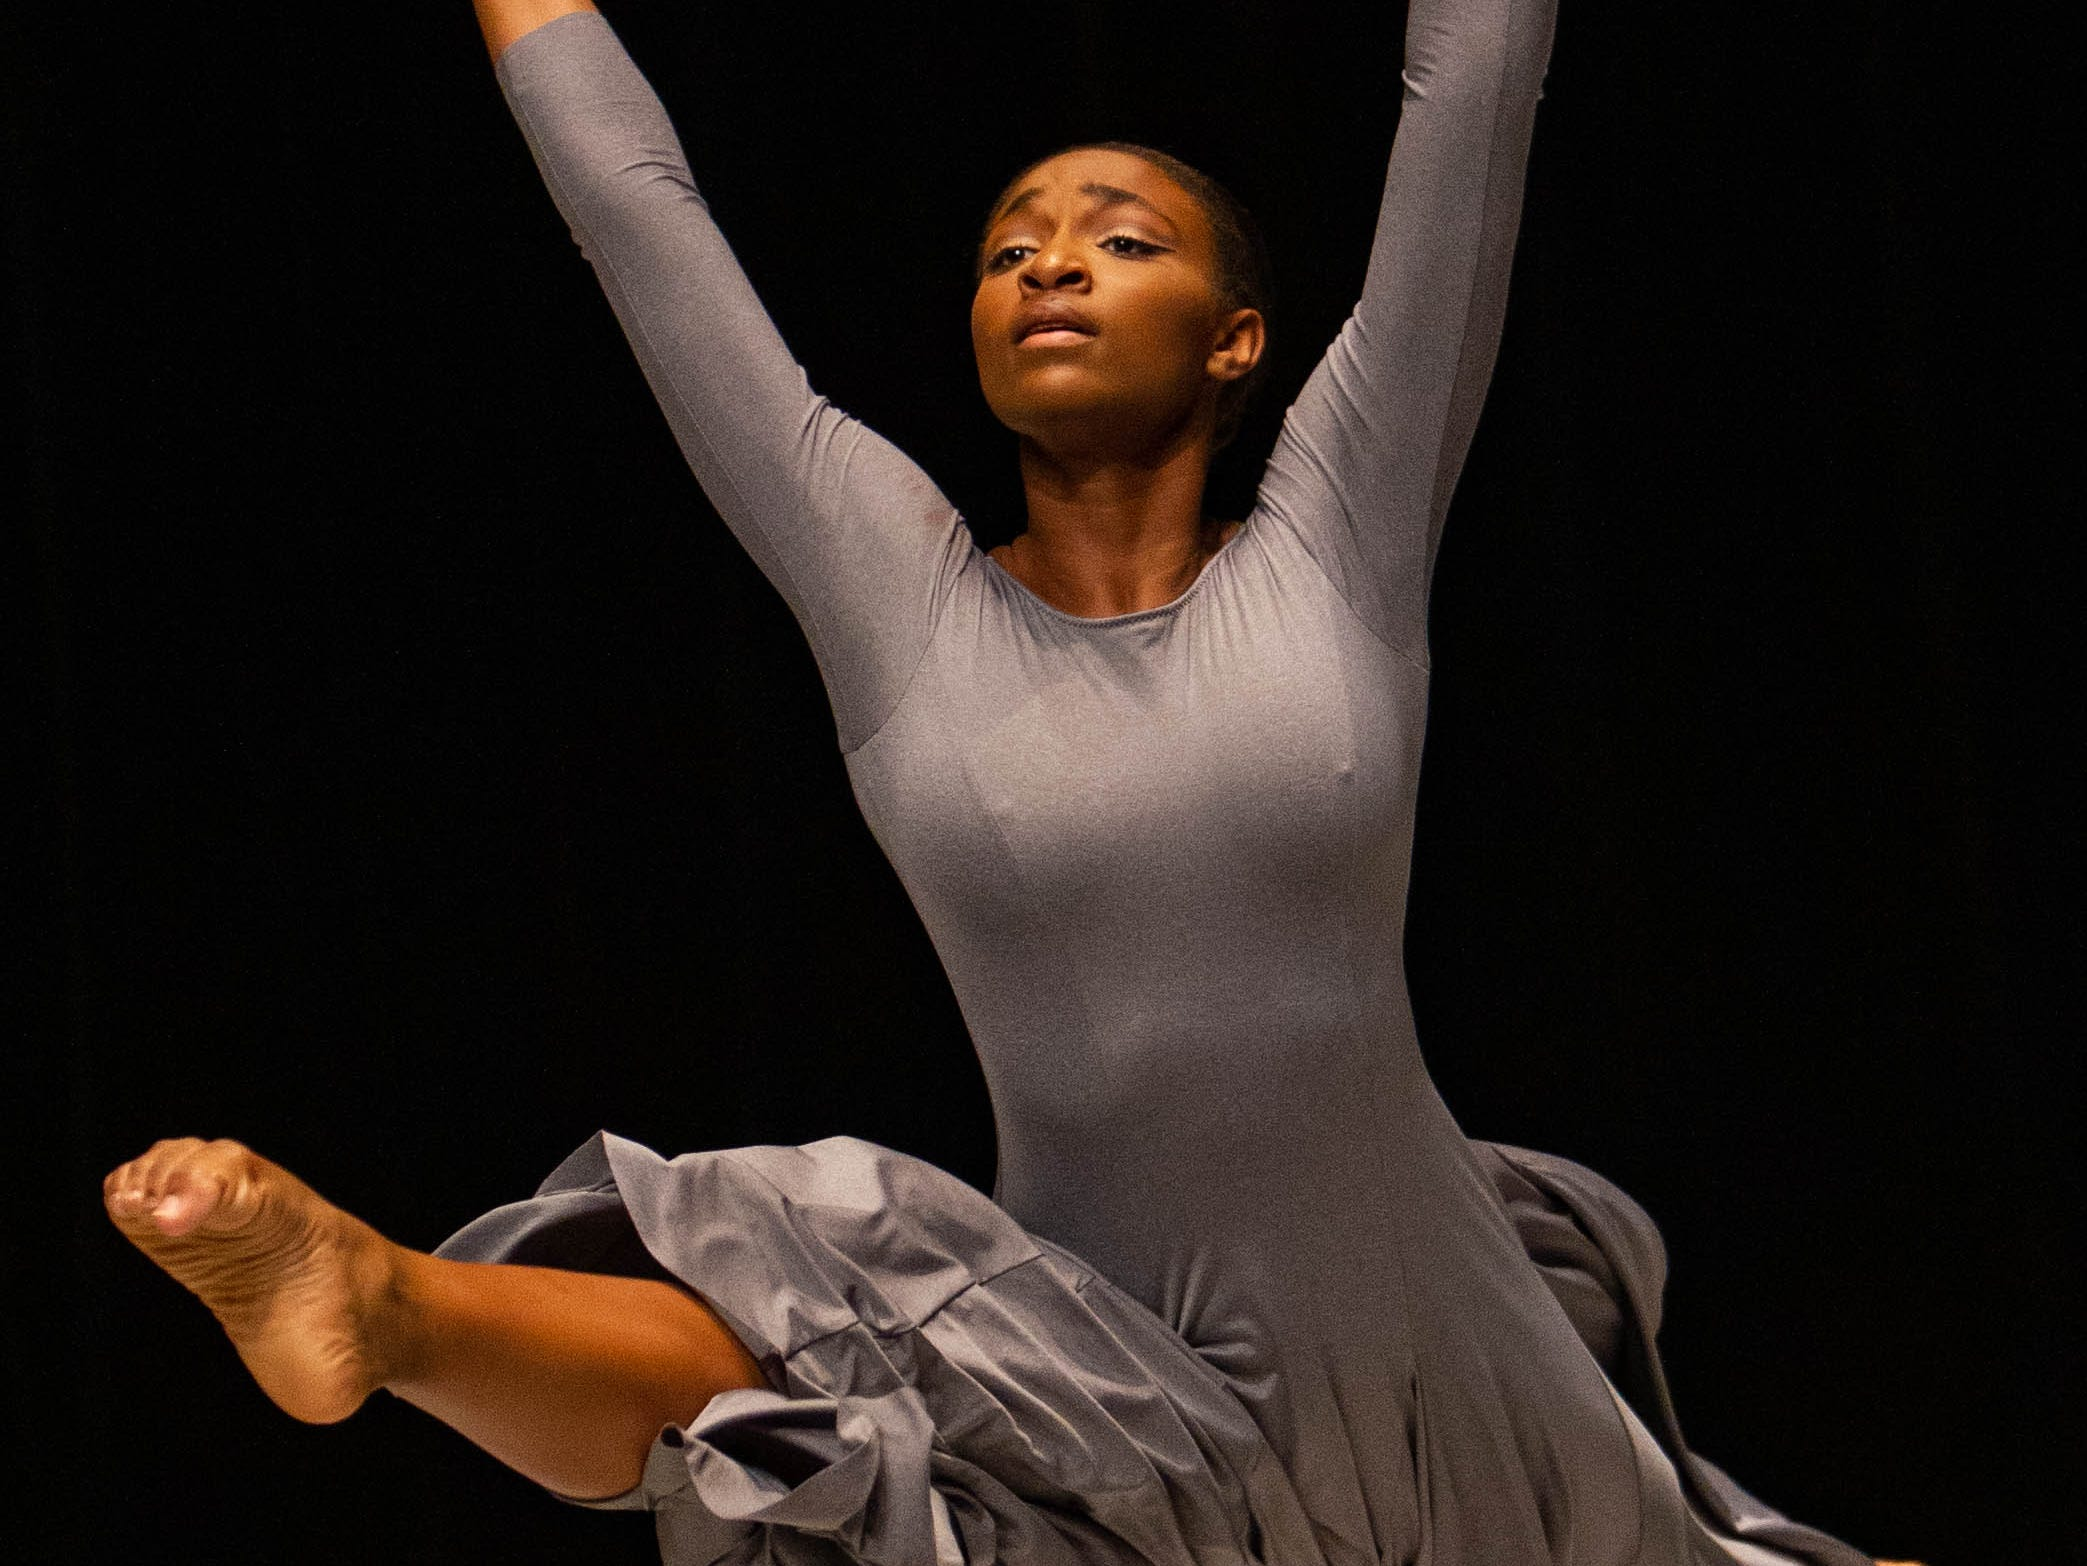 Olivia Mozie competes at the inaugural year of Grand Jeté dance competition in the Senior Contemporary Modern division, at the South Carolina Governor's School for the Arts and Humanities, on Saturday, March 2, 2019.